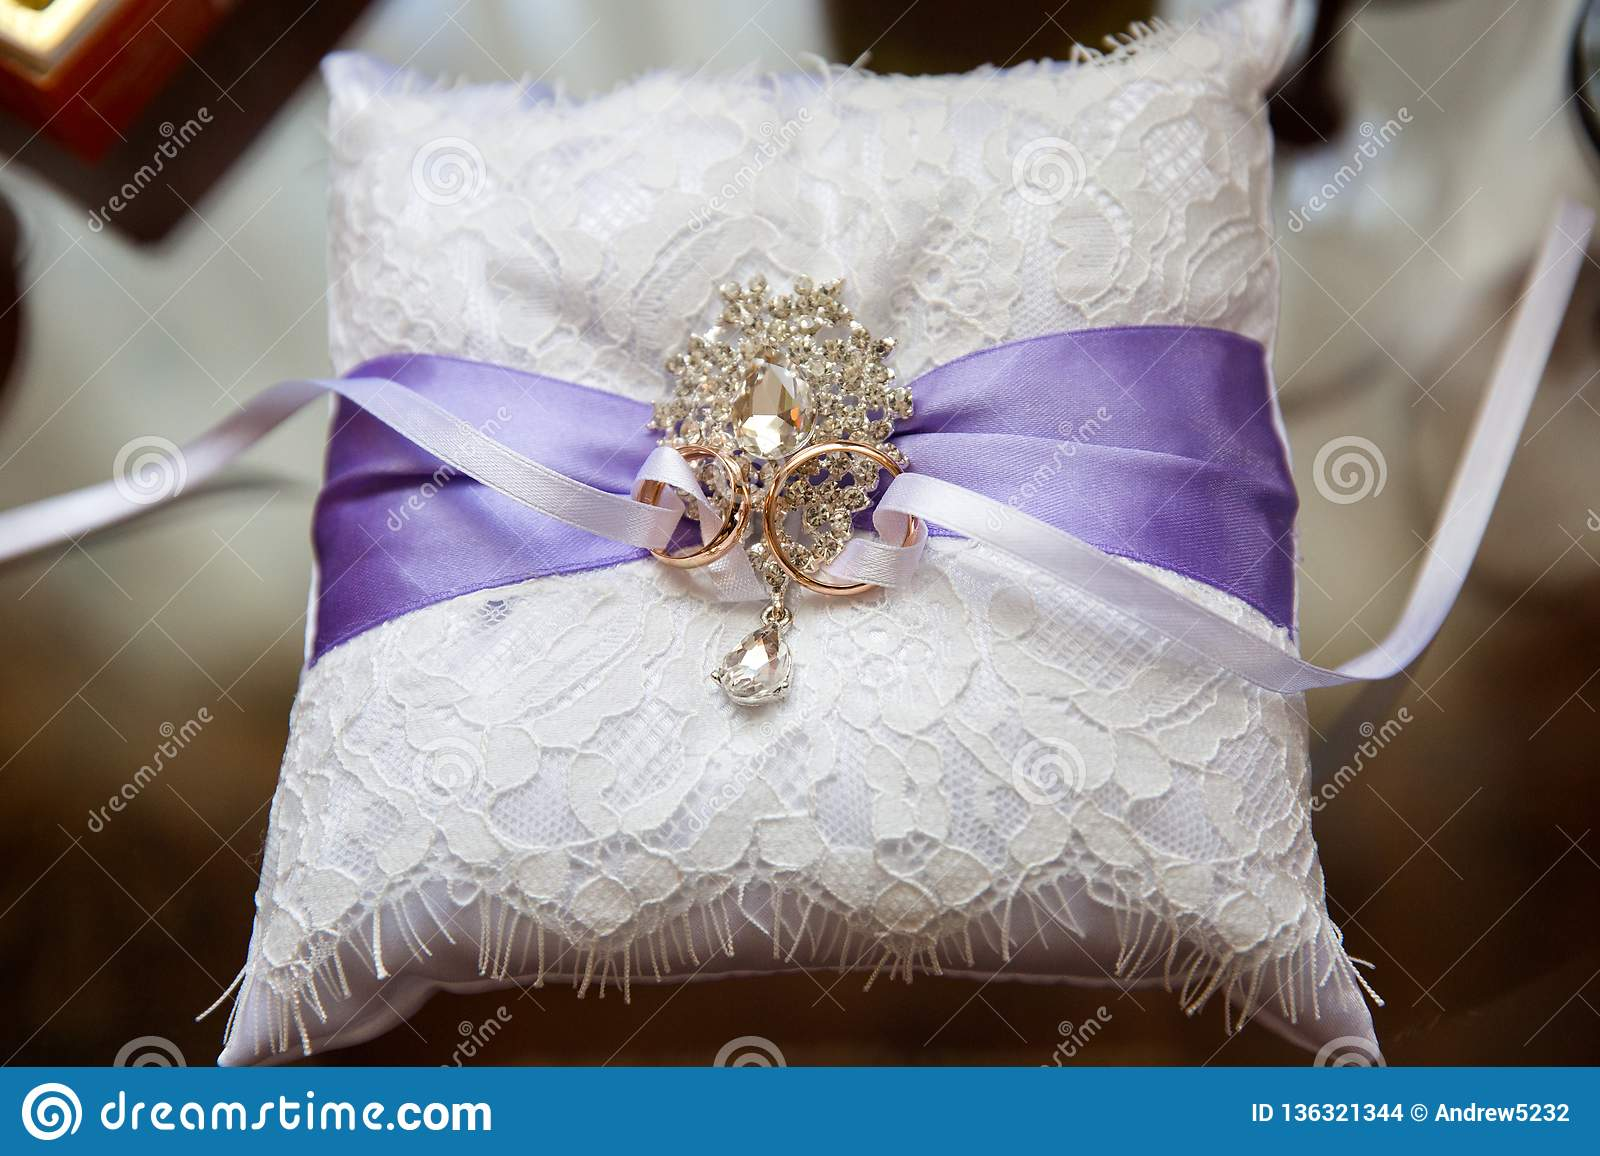 A Pair Of Wedding Rings On A White Pillow Stock Photo Image Of